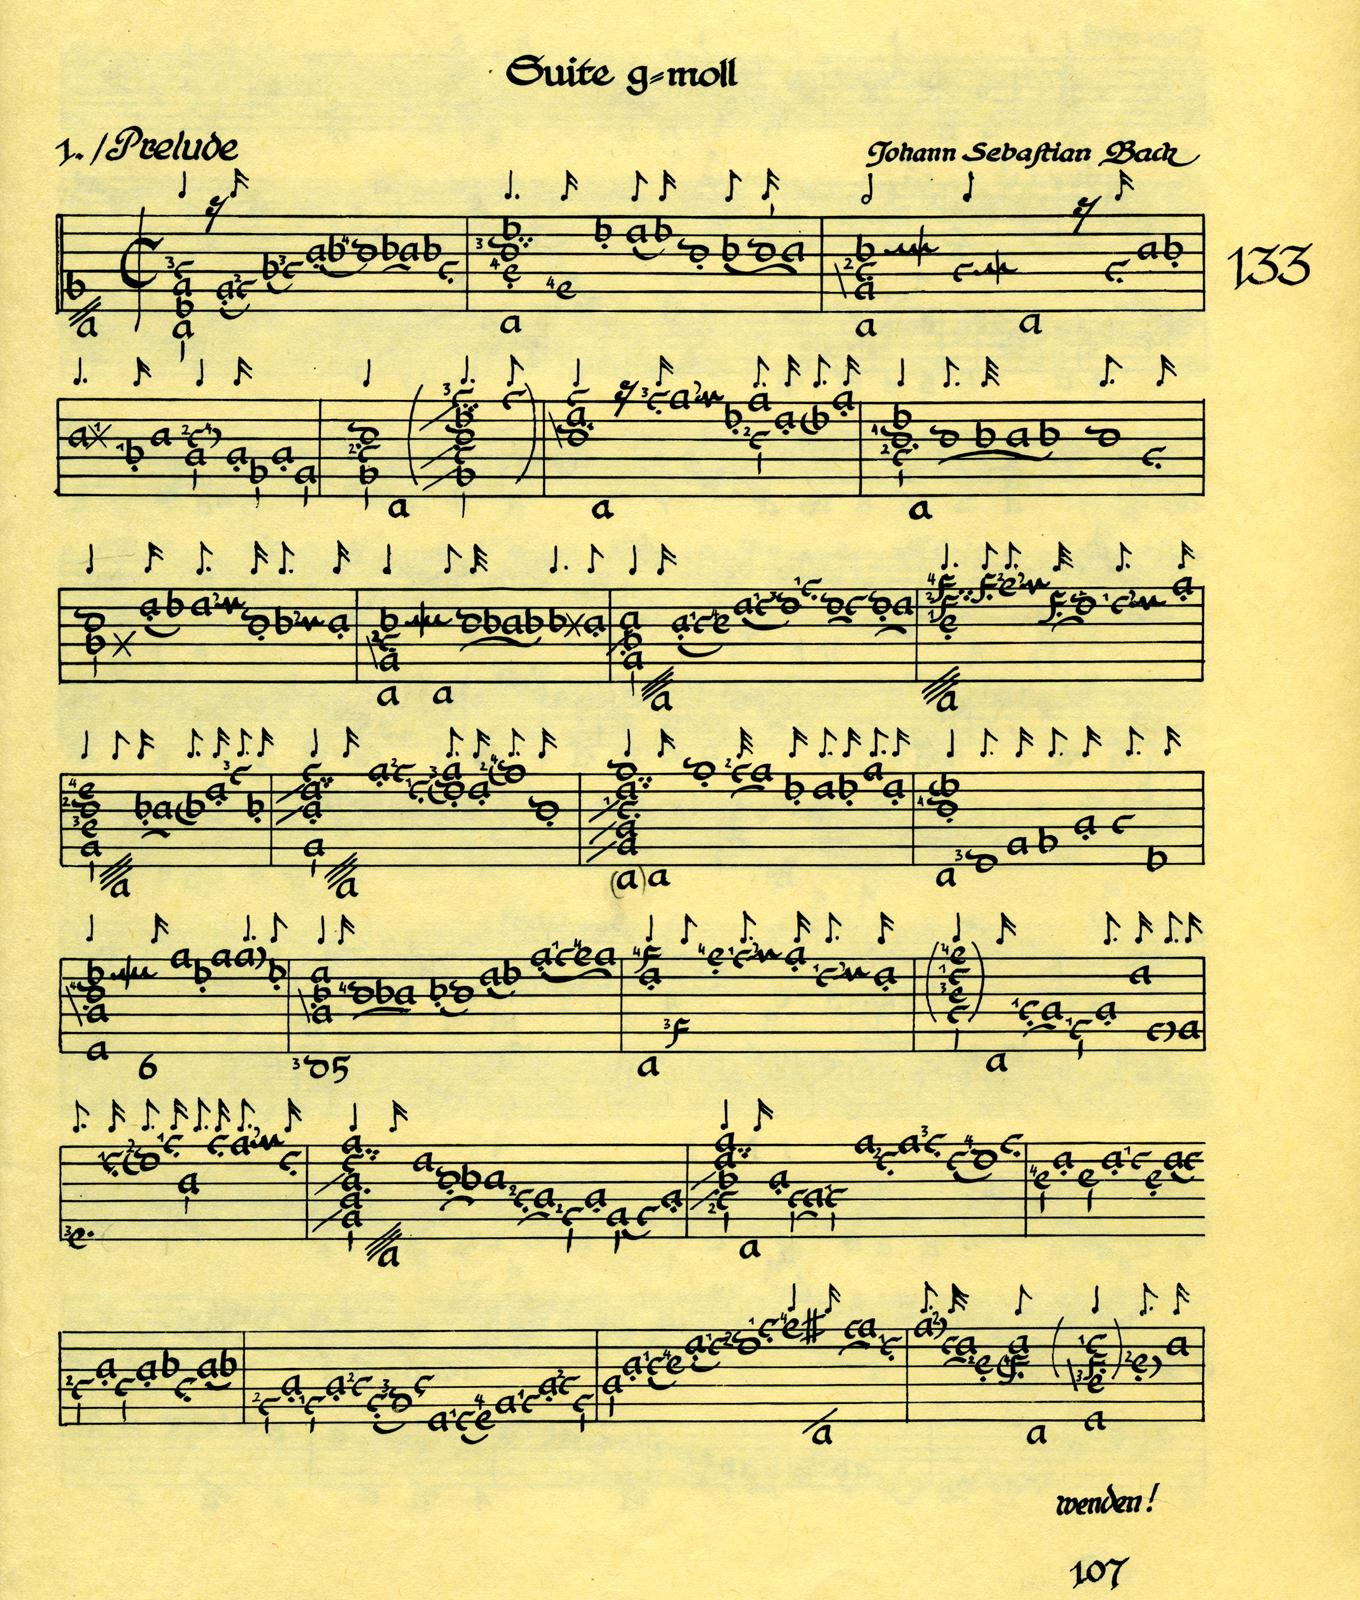 The Myth of Bach's Lute Suites by Clive Titmuss | This is